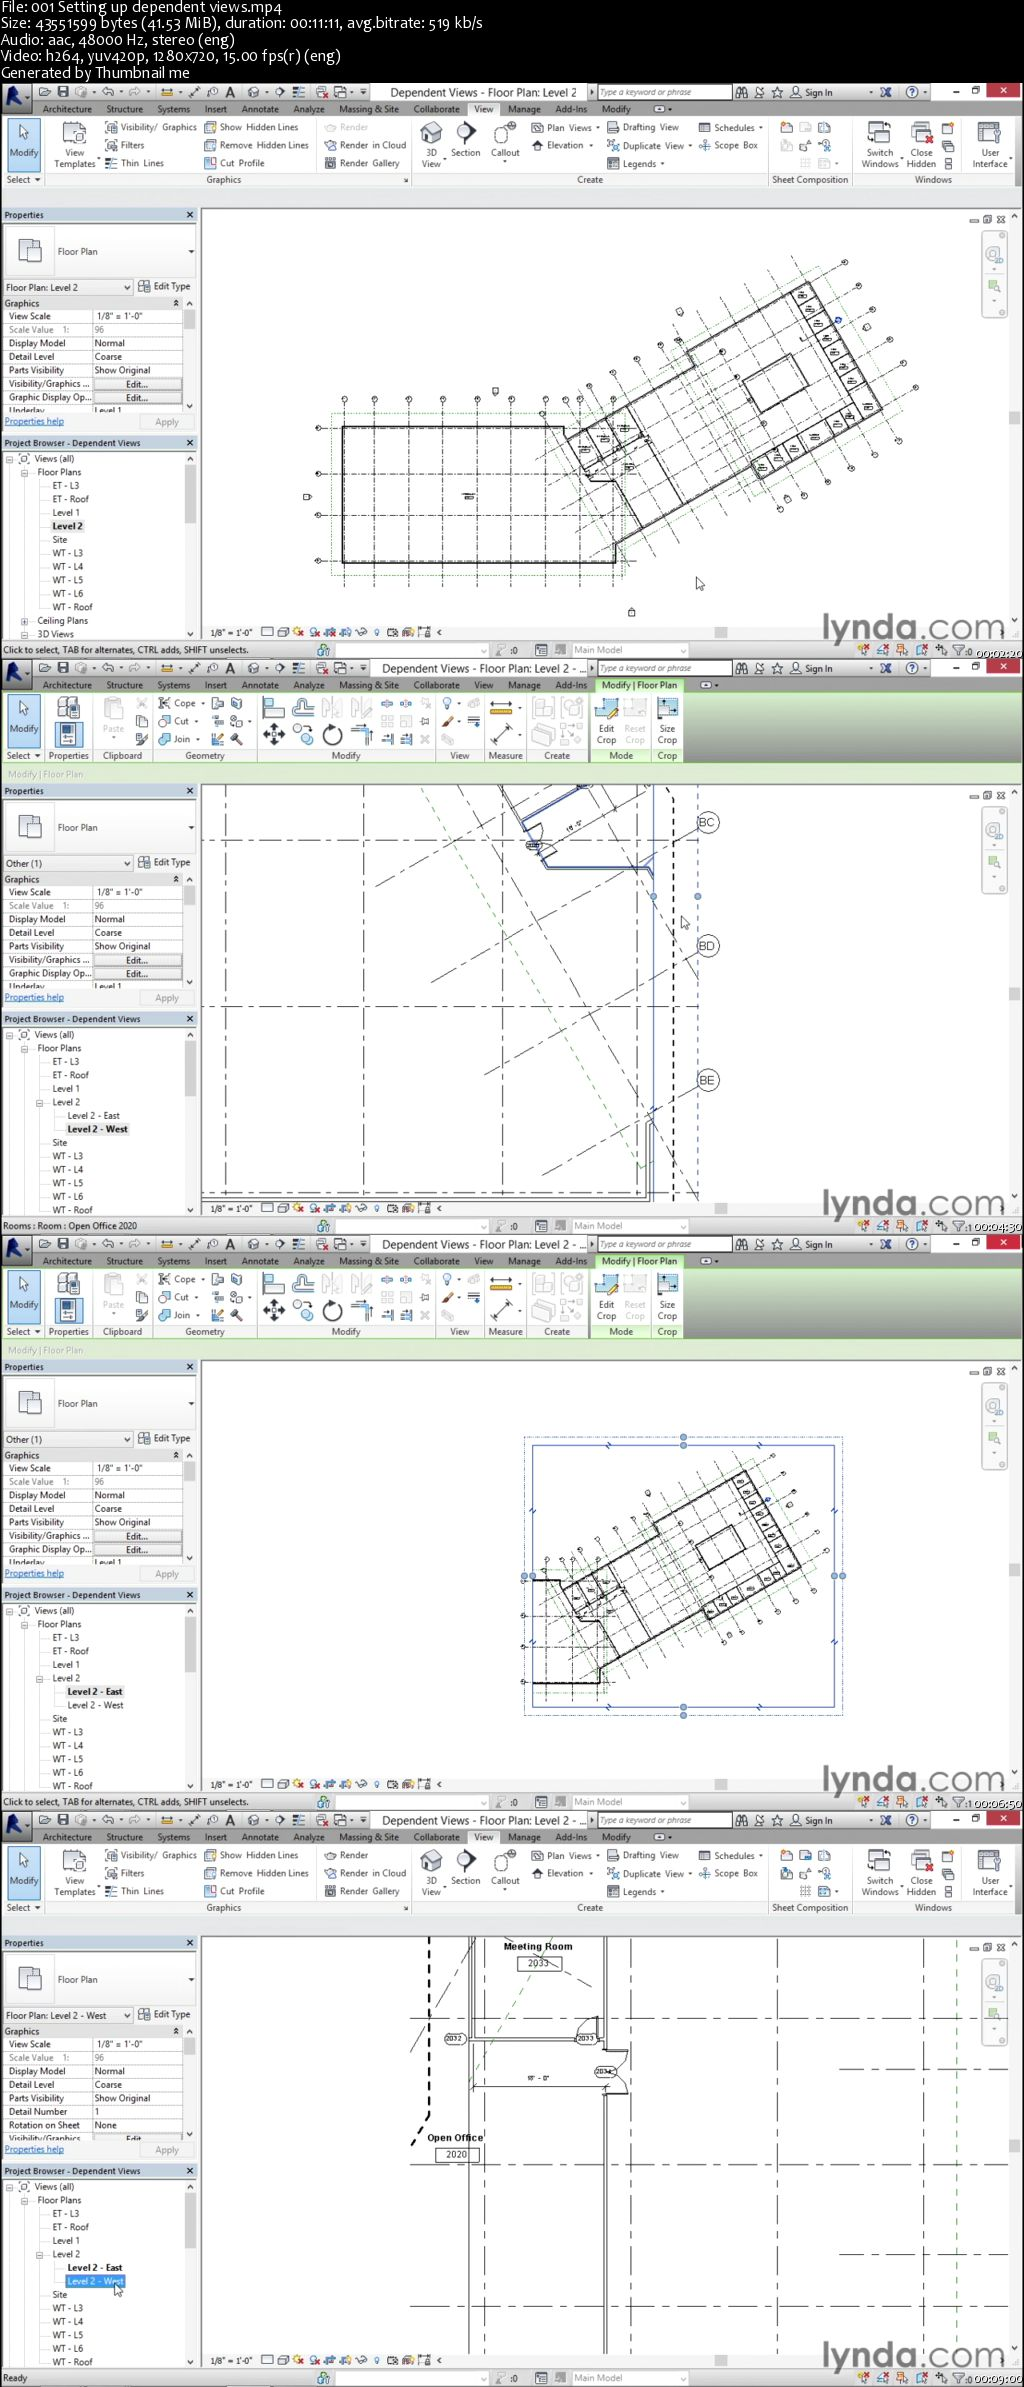 Lynda - Revit: Tips, Tricks, and Troubleshooting (Updated 26 Jan 2016)